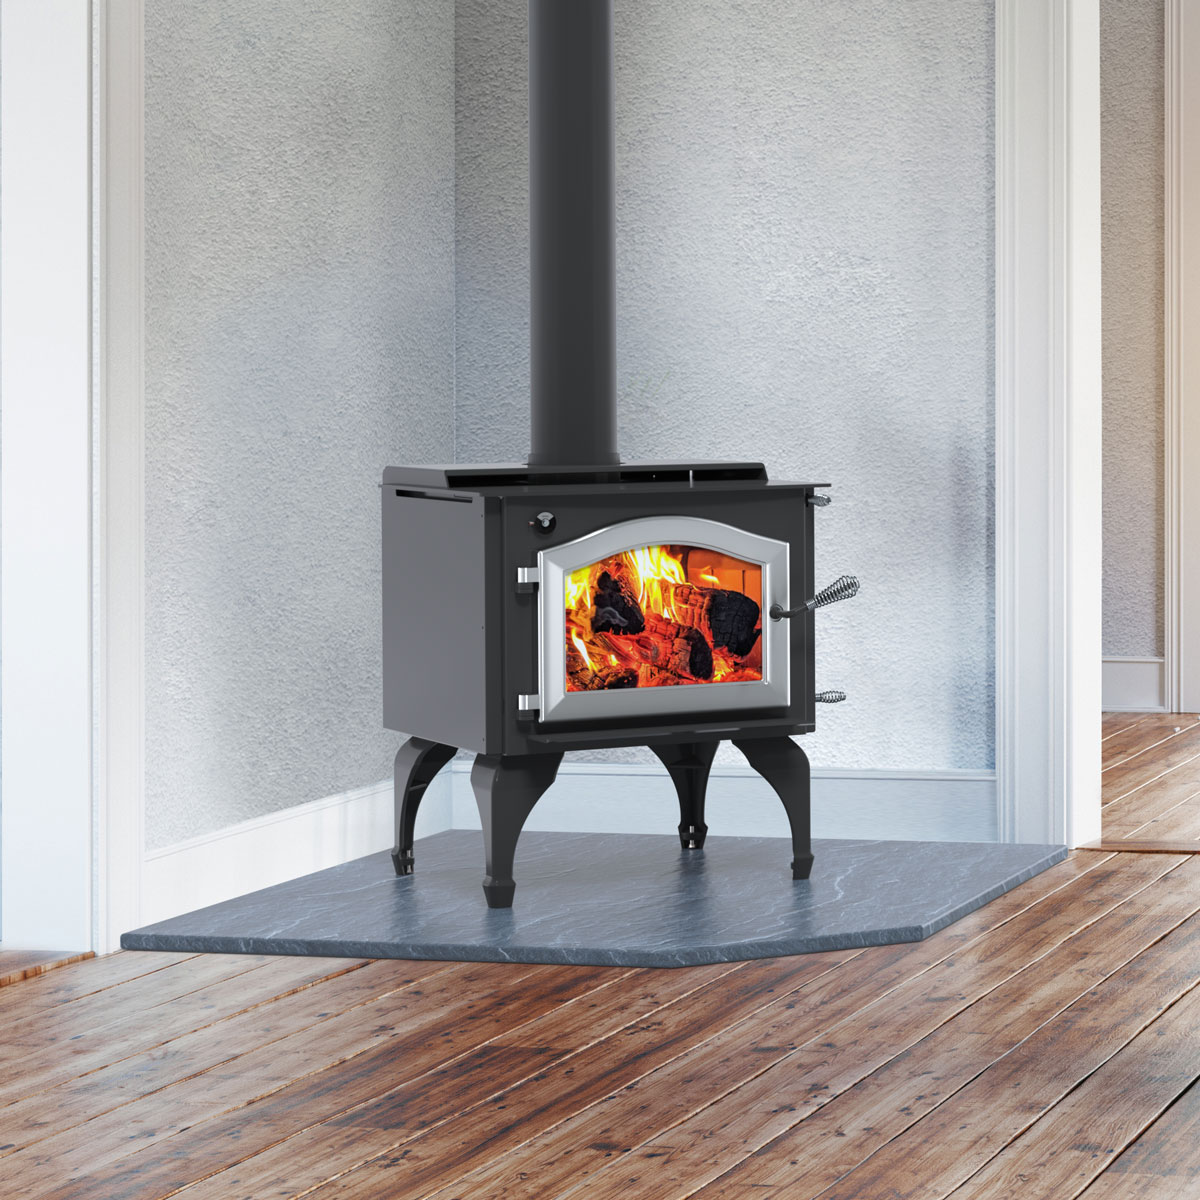 Kuma Aspen LE wood stove, made in the USA